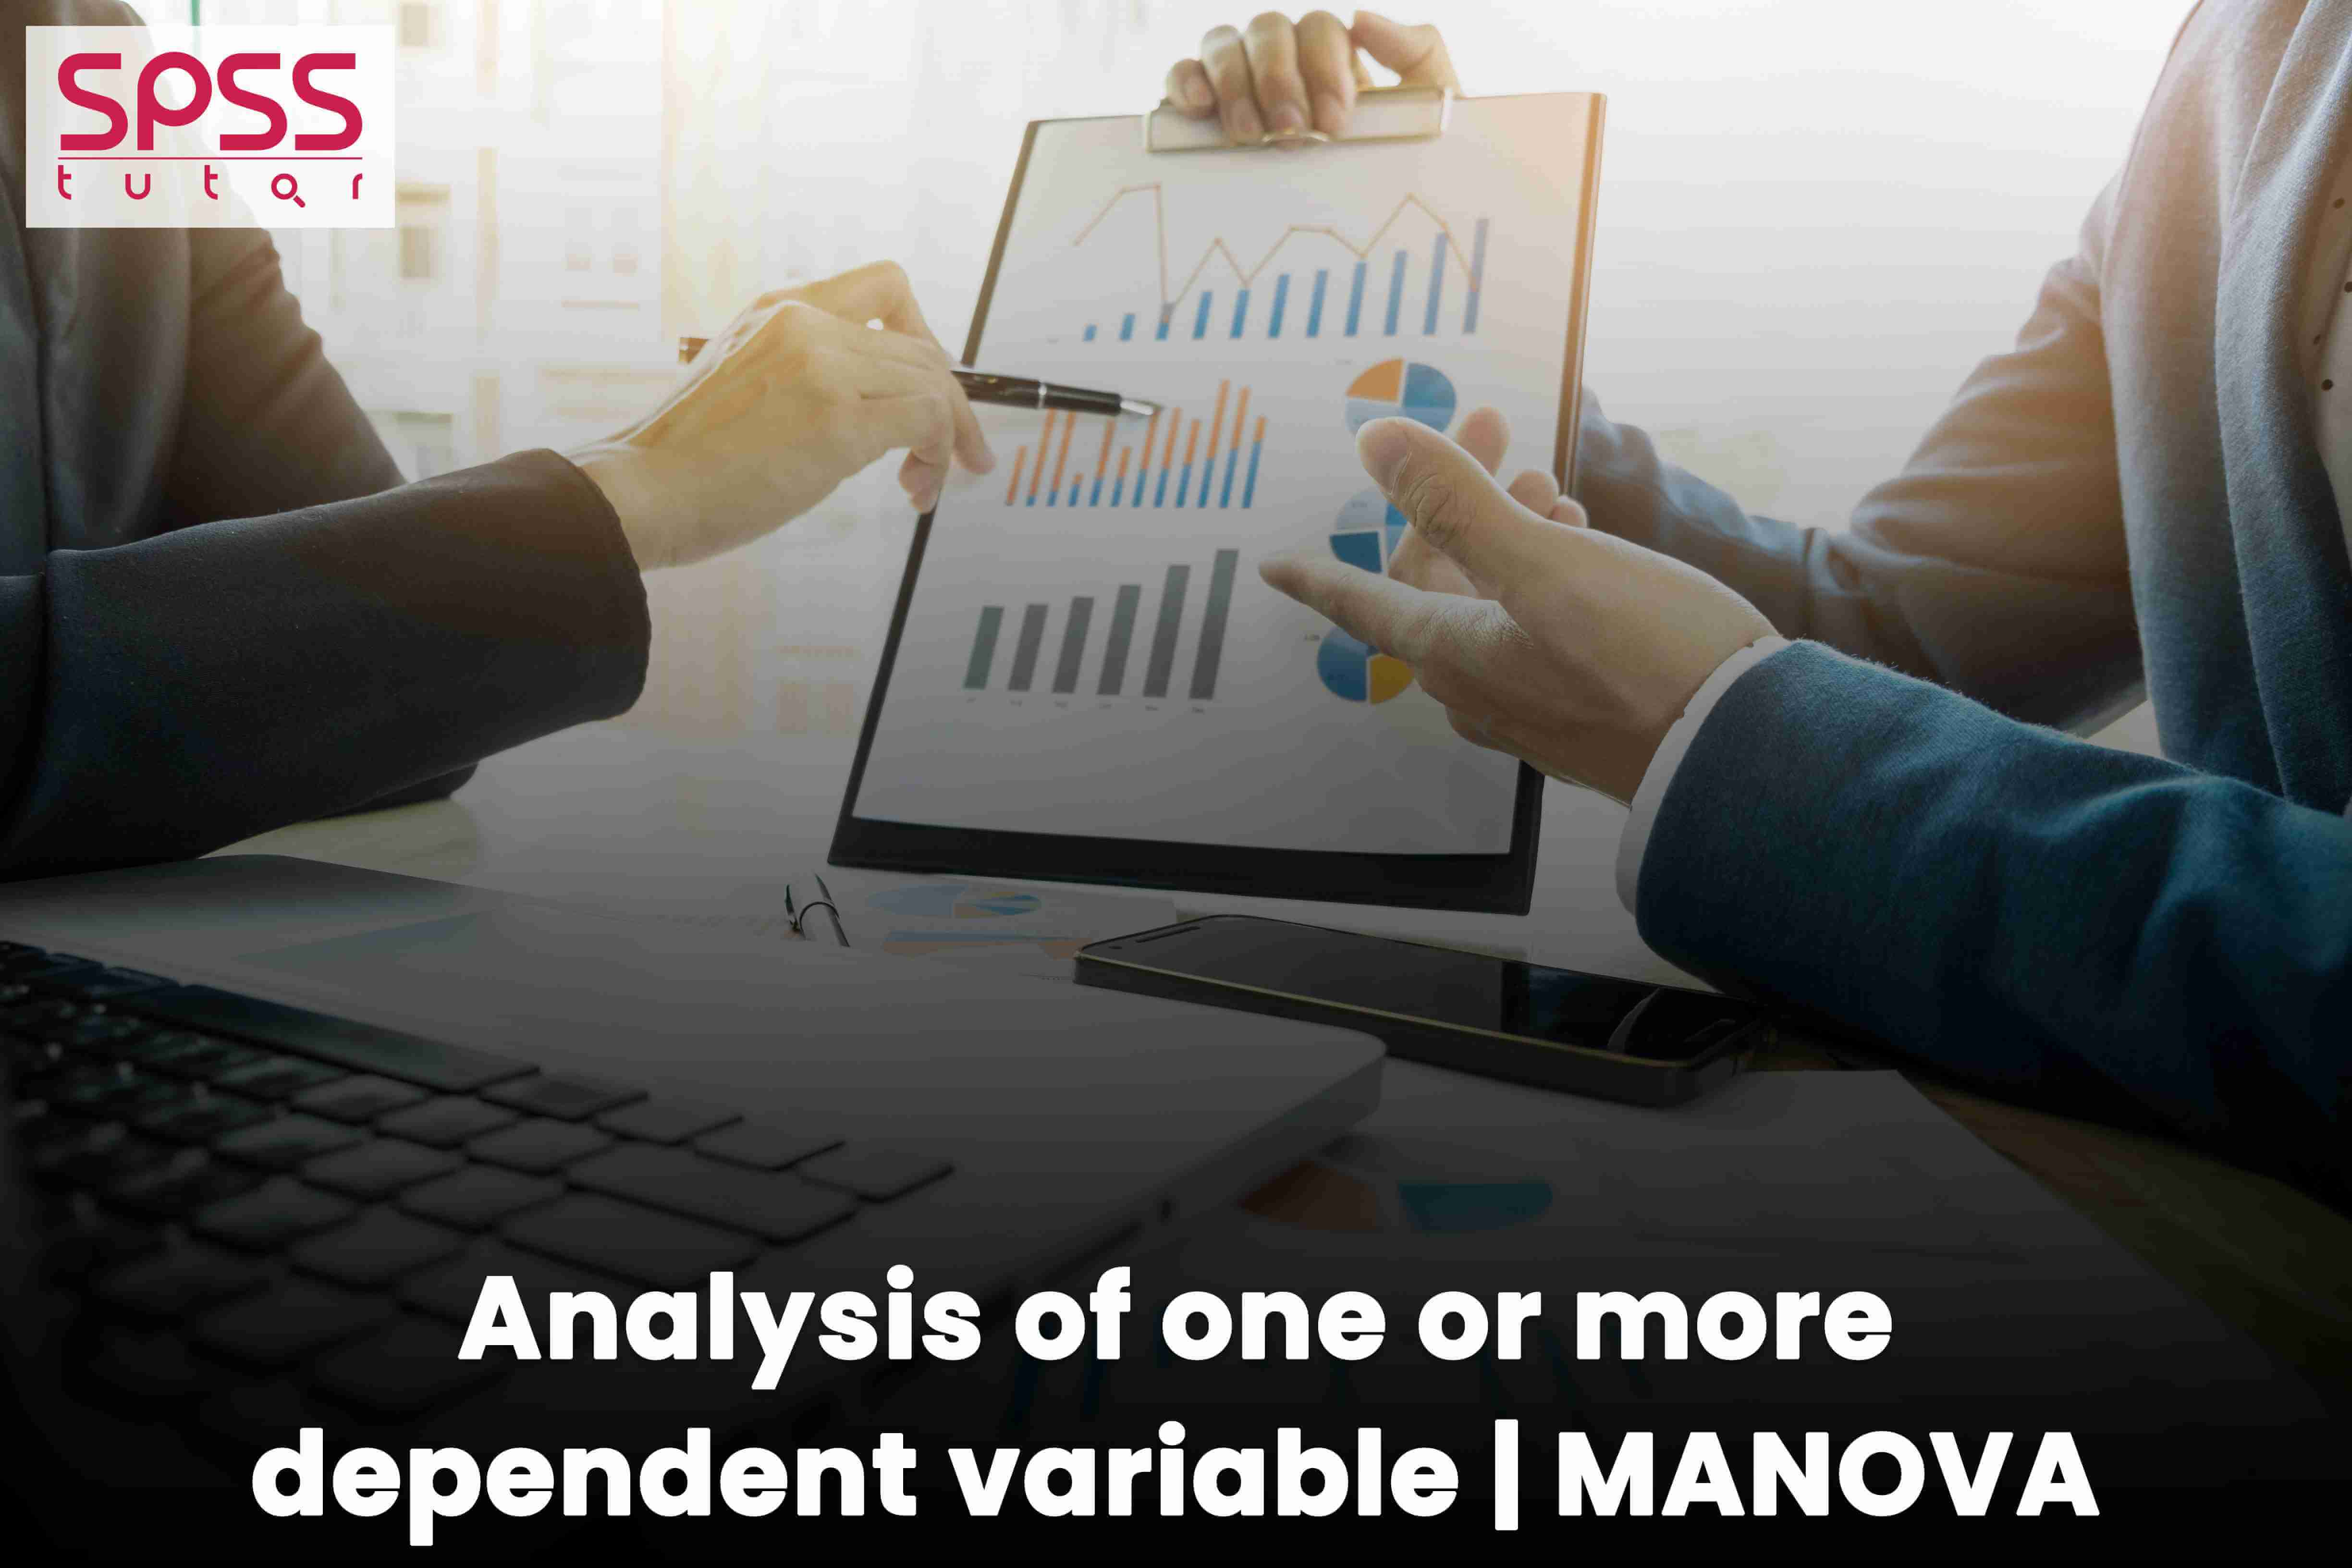 Analysis of one or more dependent variable MANOVA